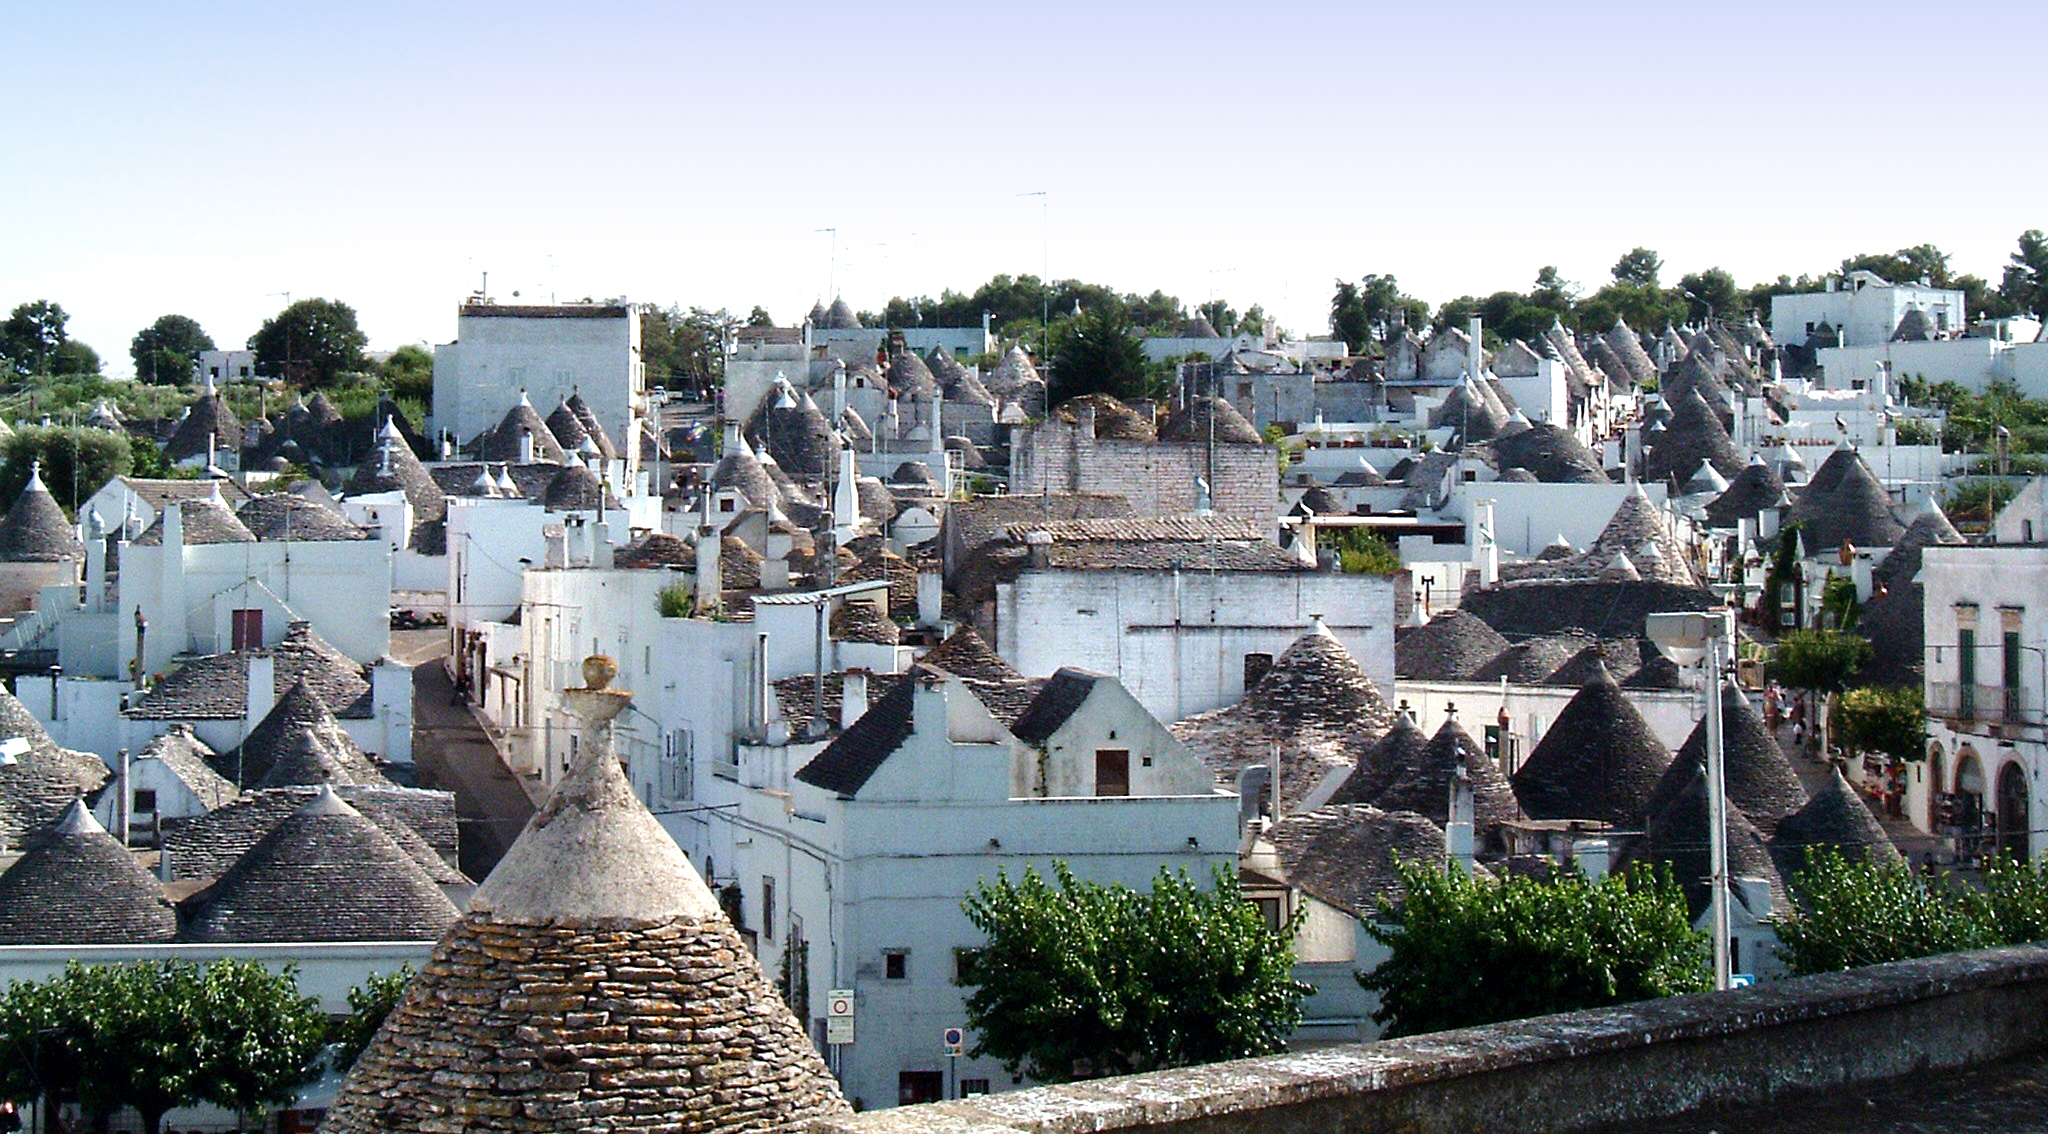 https://upload.wikimedia.org/wikipedia/commons/f/f7/Alberobello_retouched.jpg